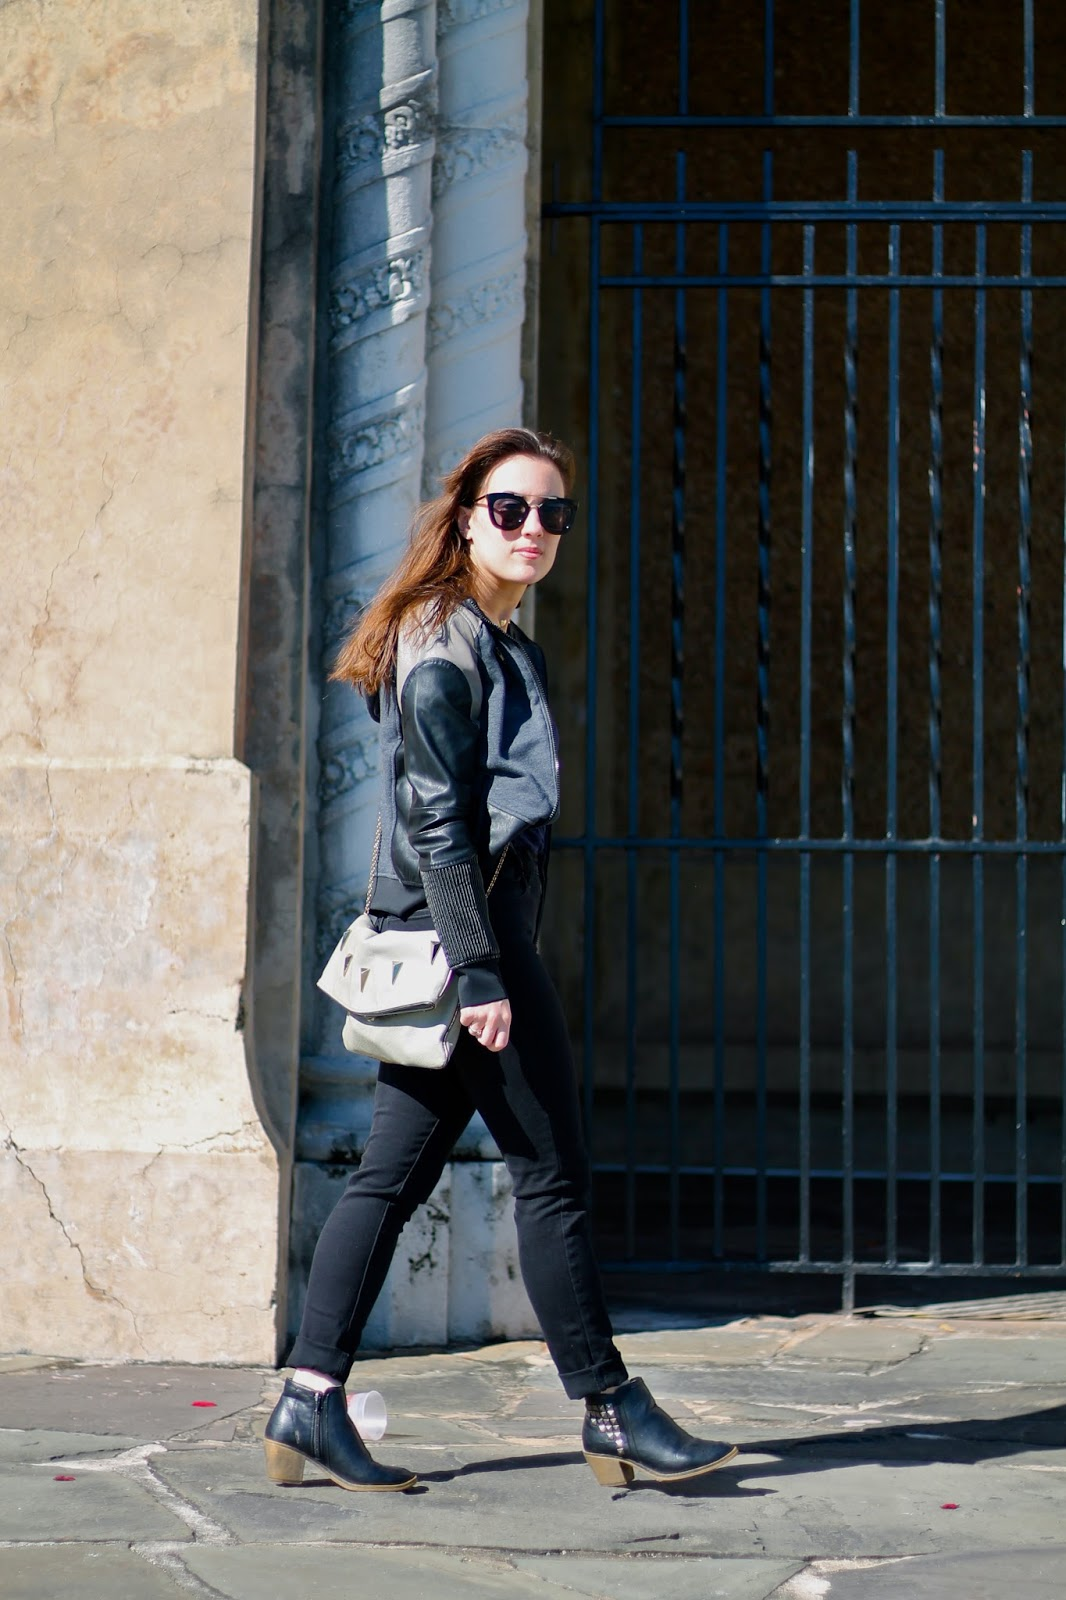 fall fashion, essential fall pieces, what to wear in the fall, fall style, leather jacket, wardrobe staples, capsule wardrobe, capsule collection, fashion blogger, miami fashion blogger